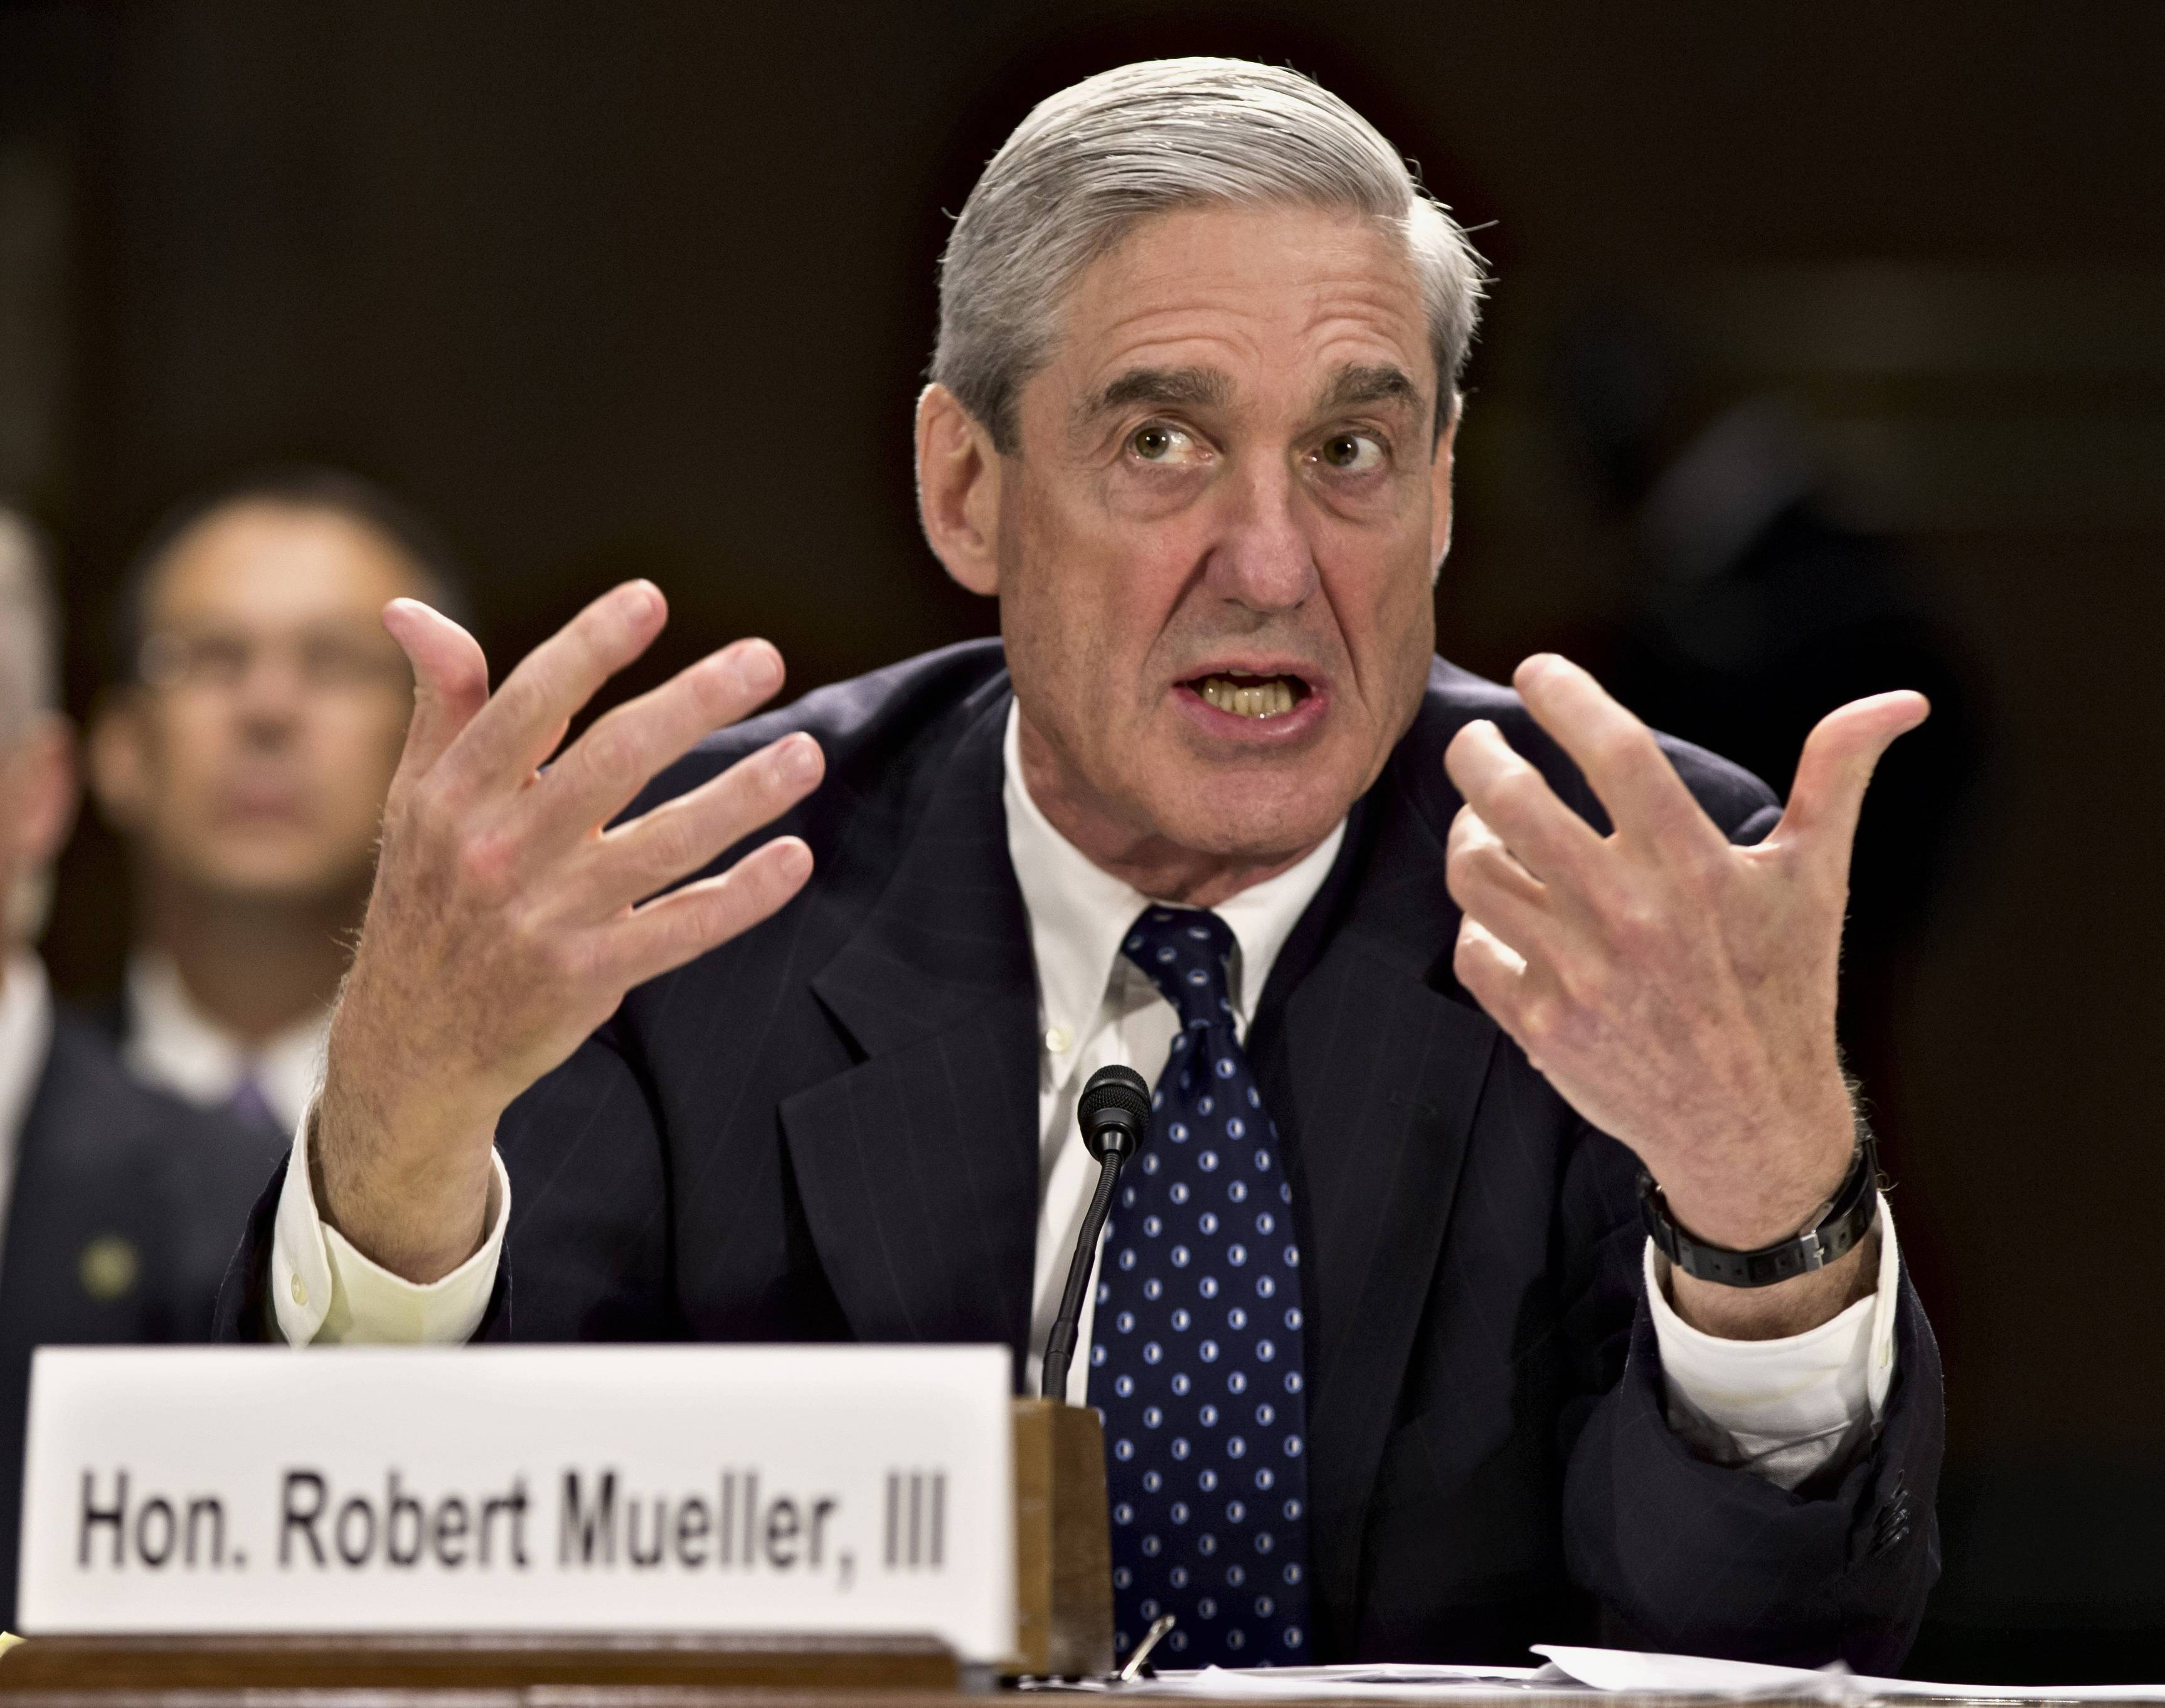 In this June 19, 2013, file photo, former FBI Director Robert Mueller testifies on Capitol Hill in Washington. The Justice Department said it is appointing Mueller as special counsel to oversee investigation into Russian interference in the 2016 presidential election.